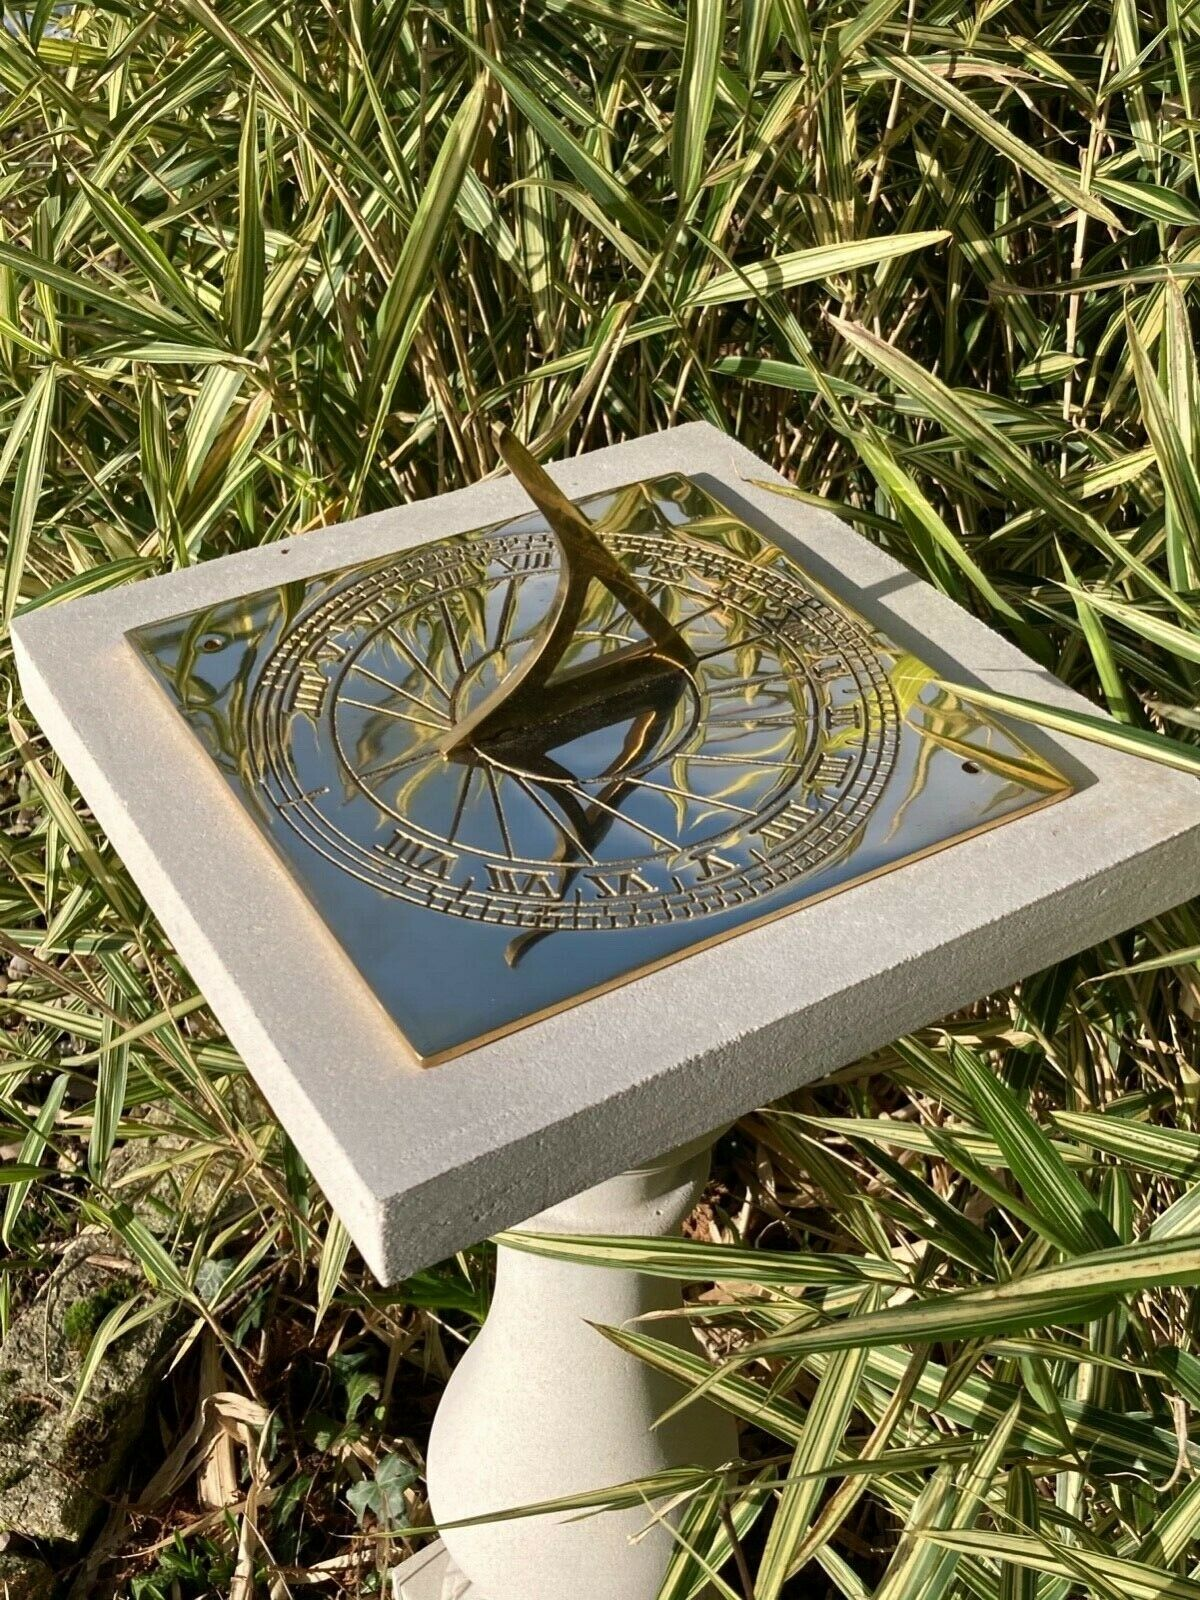 New Solid Brass Large Square Sundial Plate - Perfect For Fathers Day